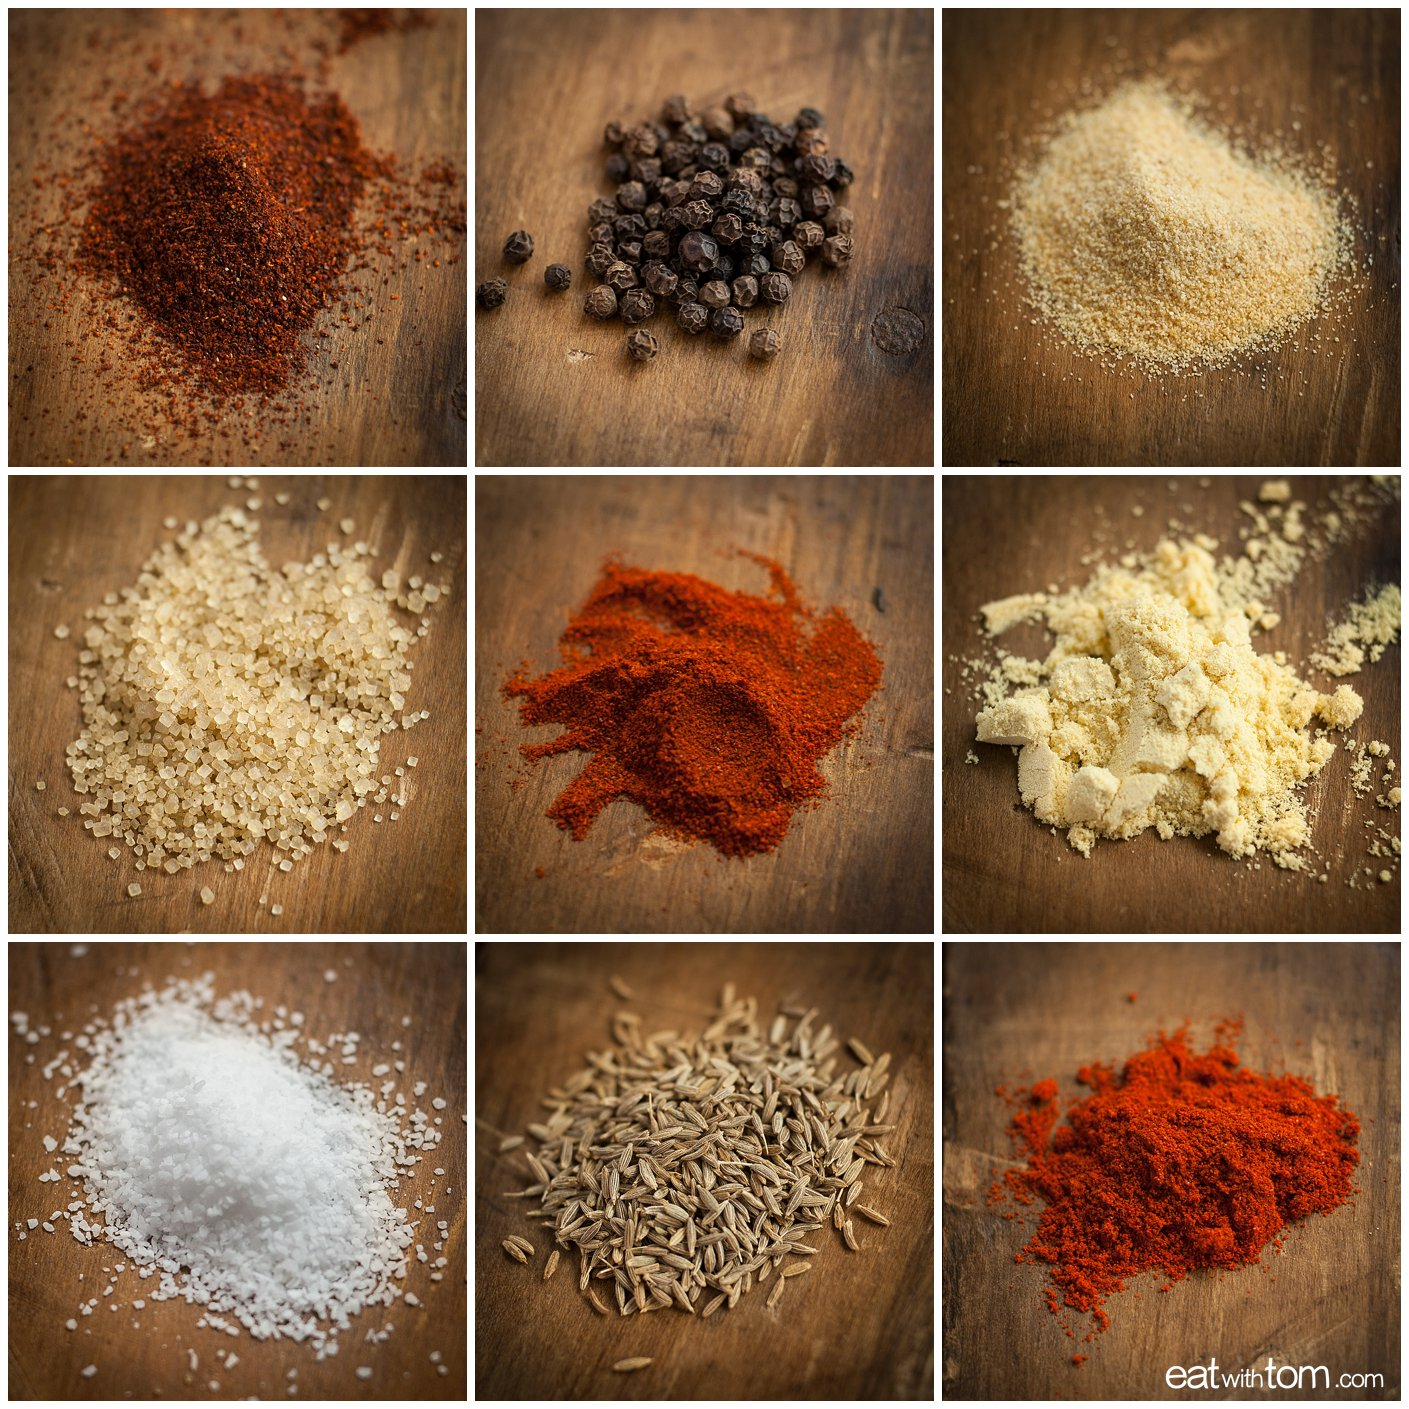 Hot wing dust recipe - Spice House Chicago magic dust from mike mills peace love bbq